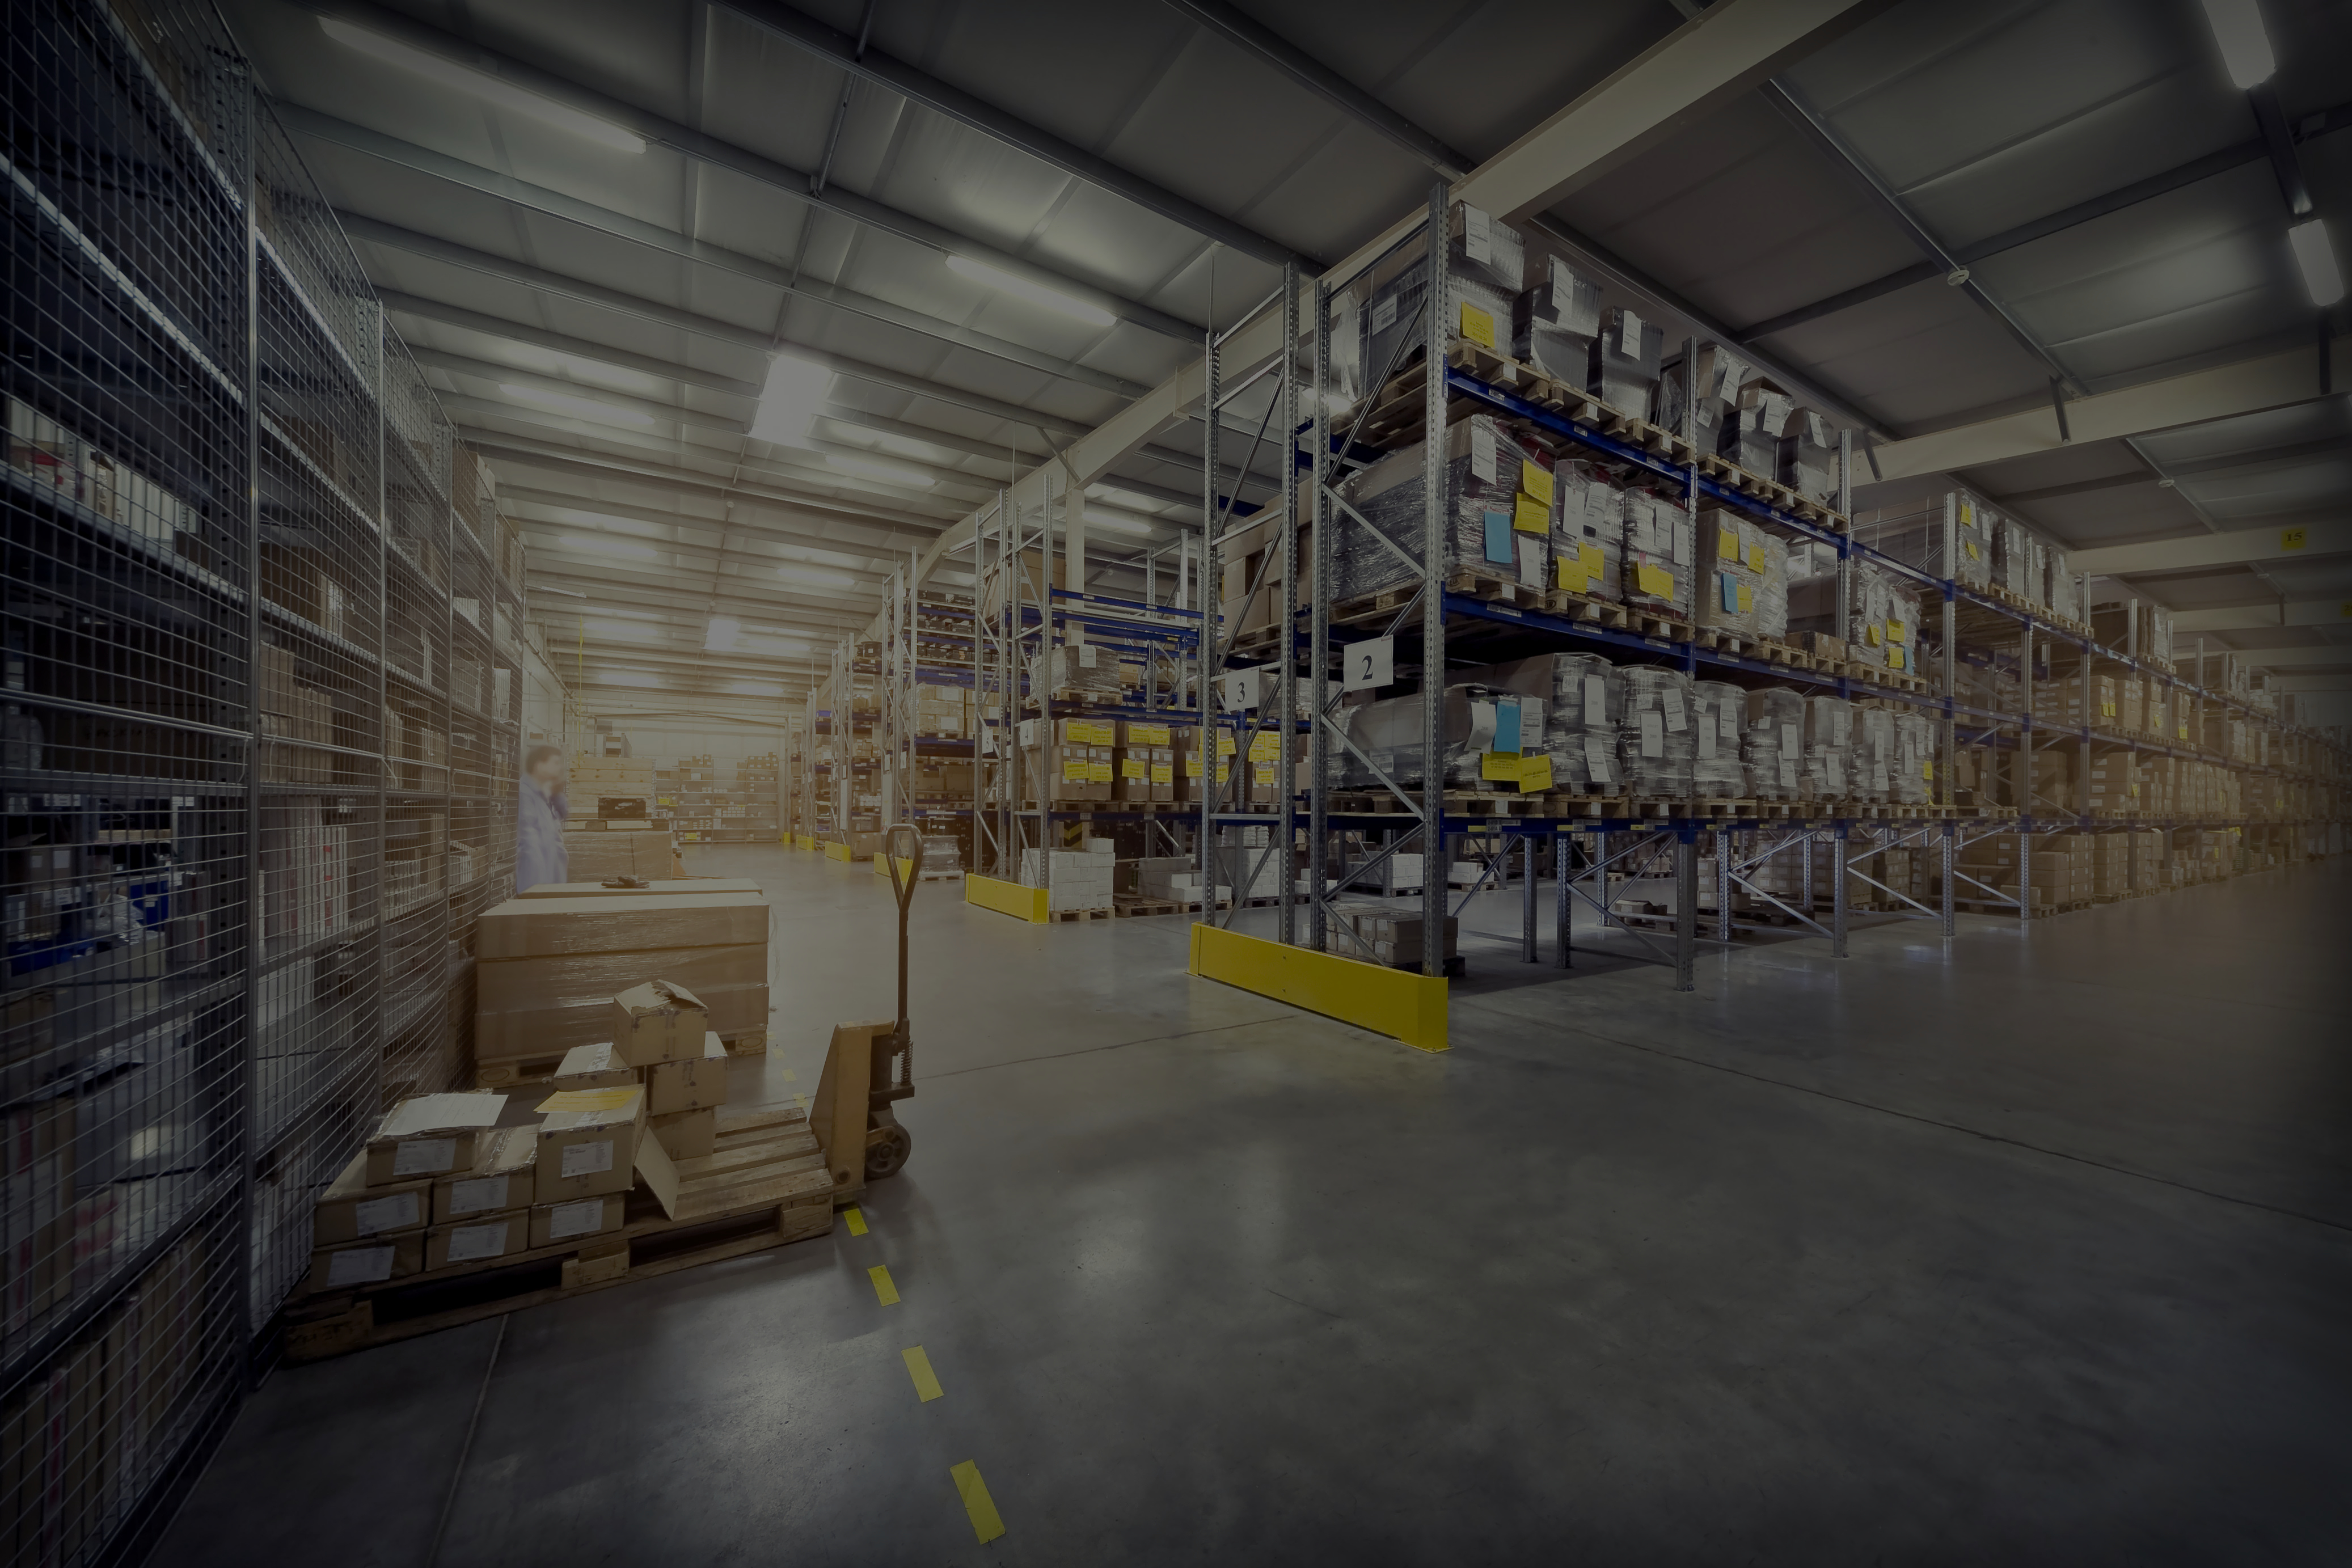 10 Top Tips to Save Money On Safety In the Warehousing Sector